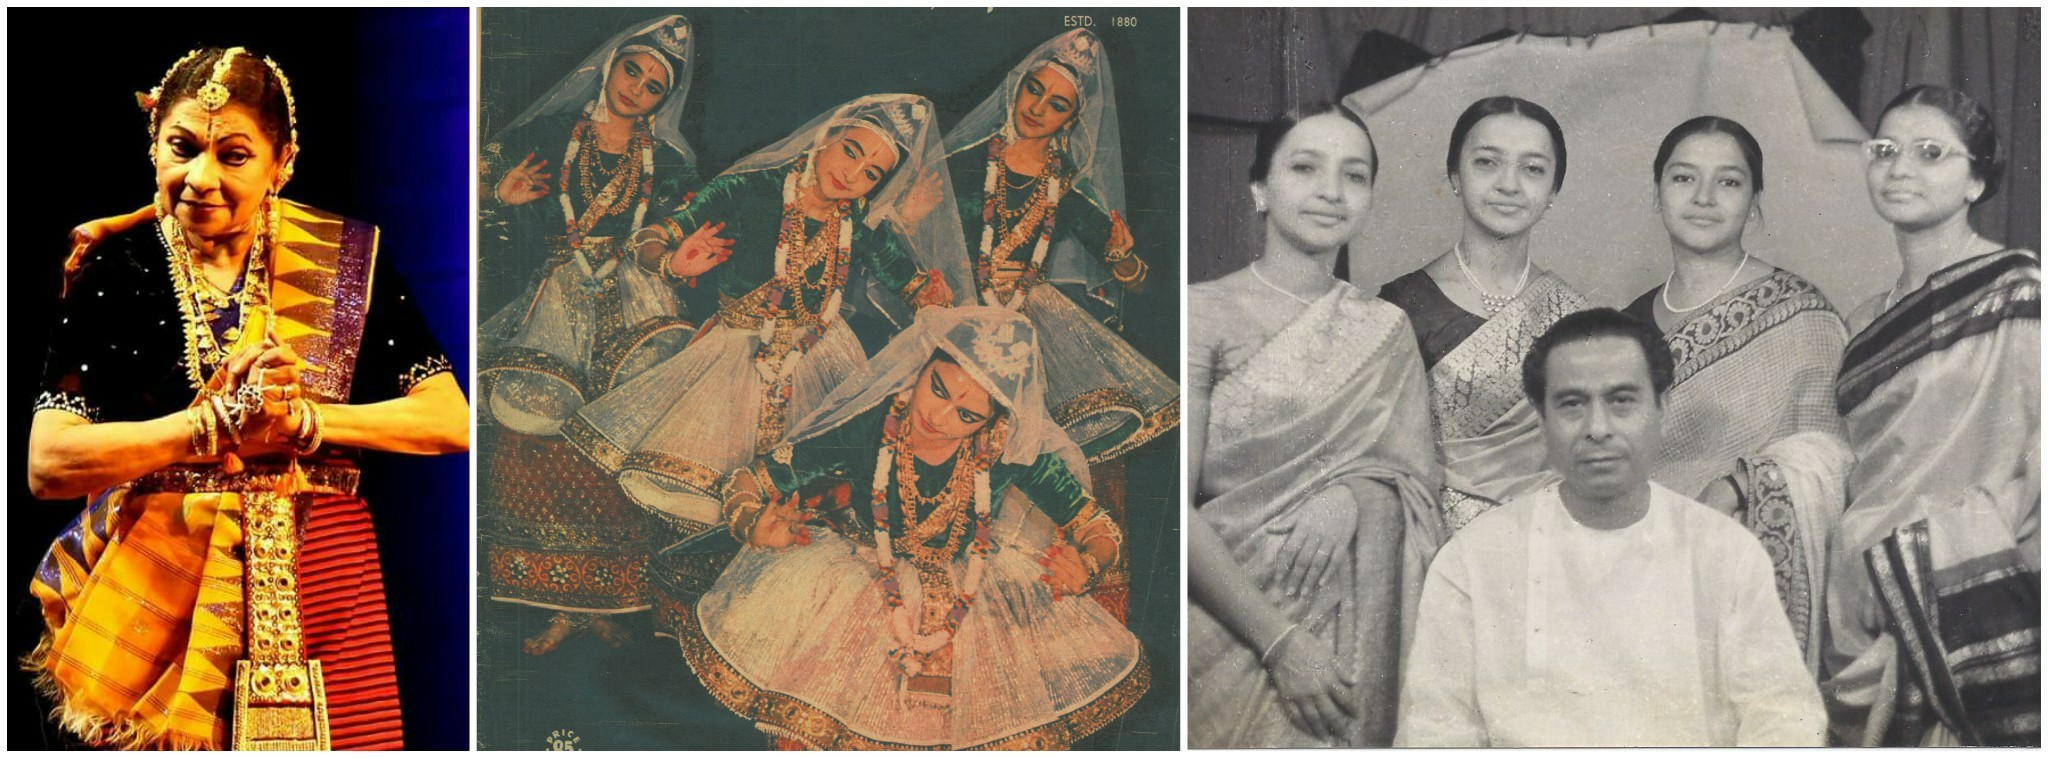 Padma Shri Dancer carrying the legacy for Manipuri dance since 1958 - The Classical story of Darshana Jhaveri